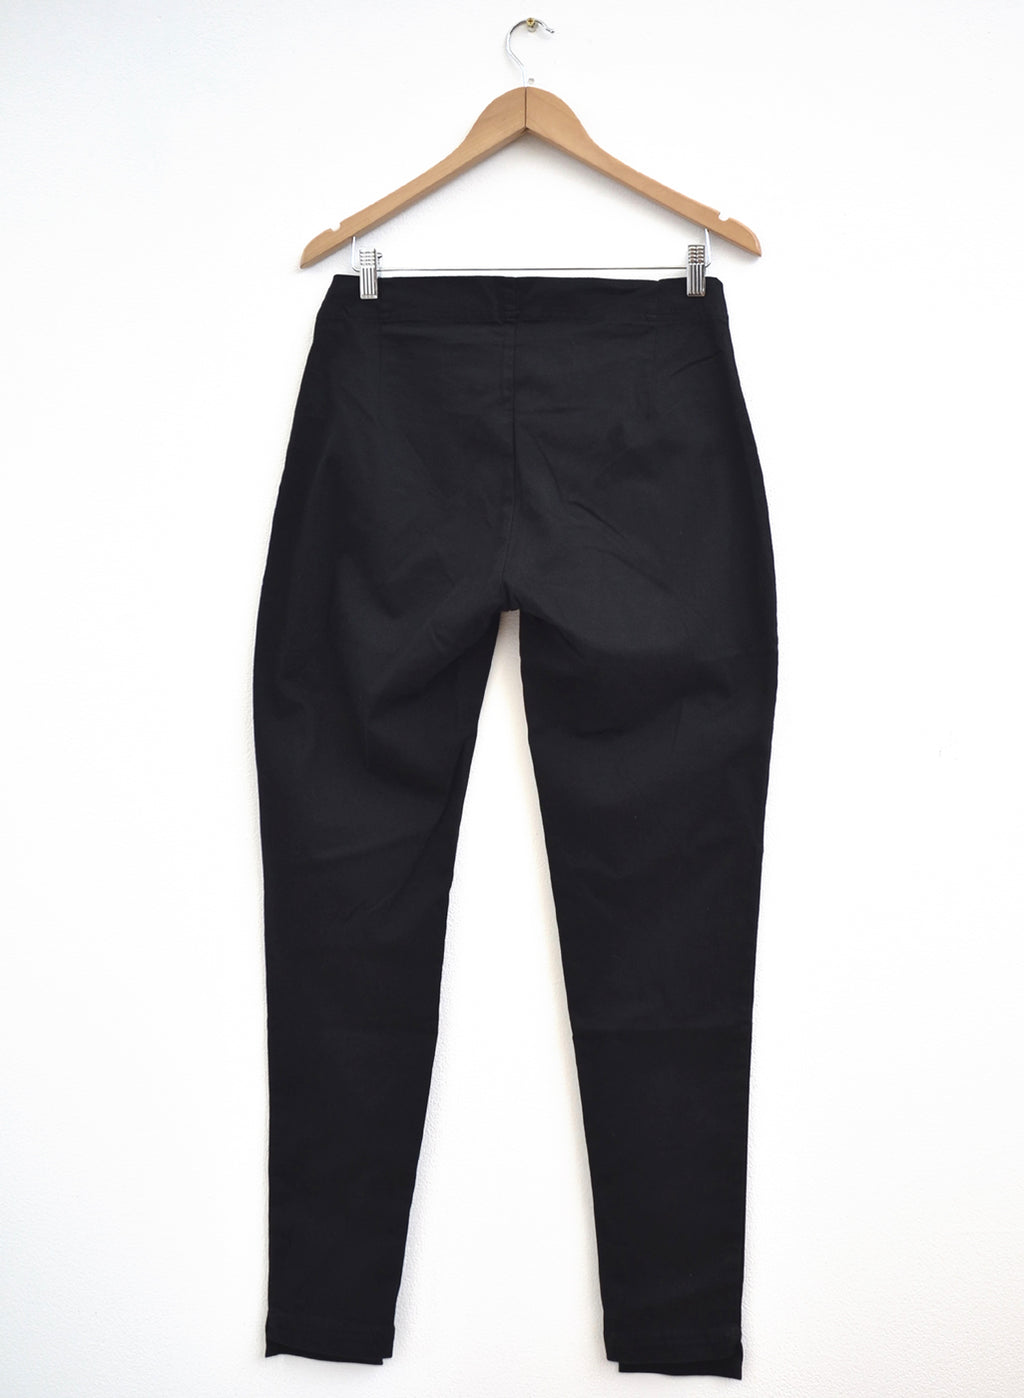 Rundholz Black Label Black Cotton Pant 218-3320112-100